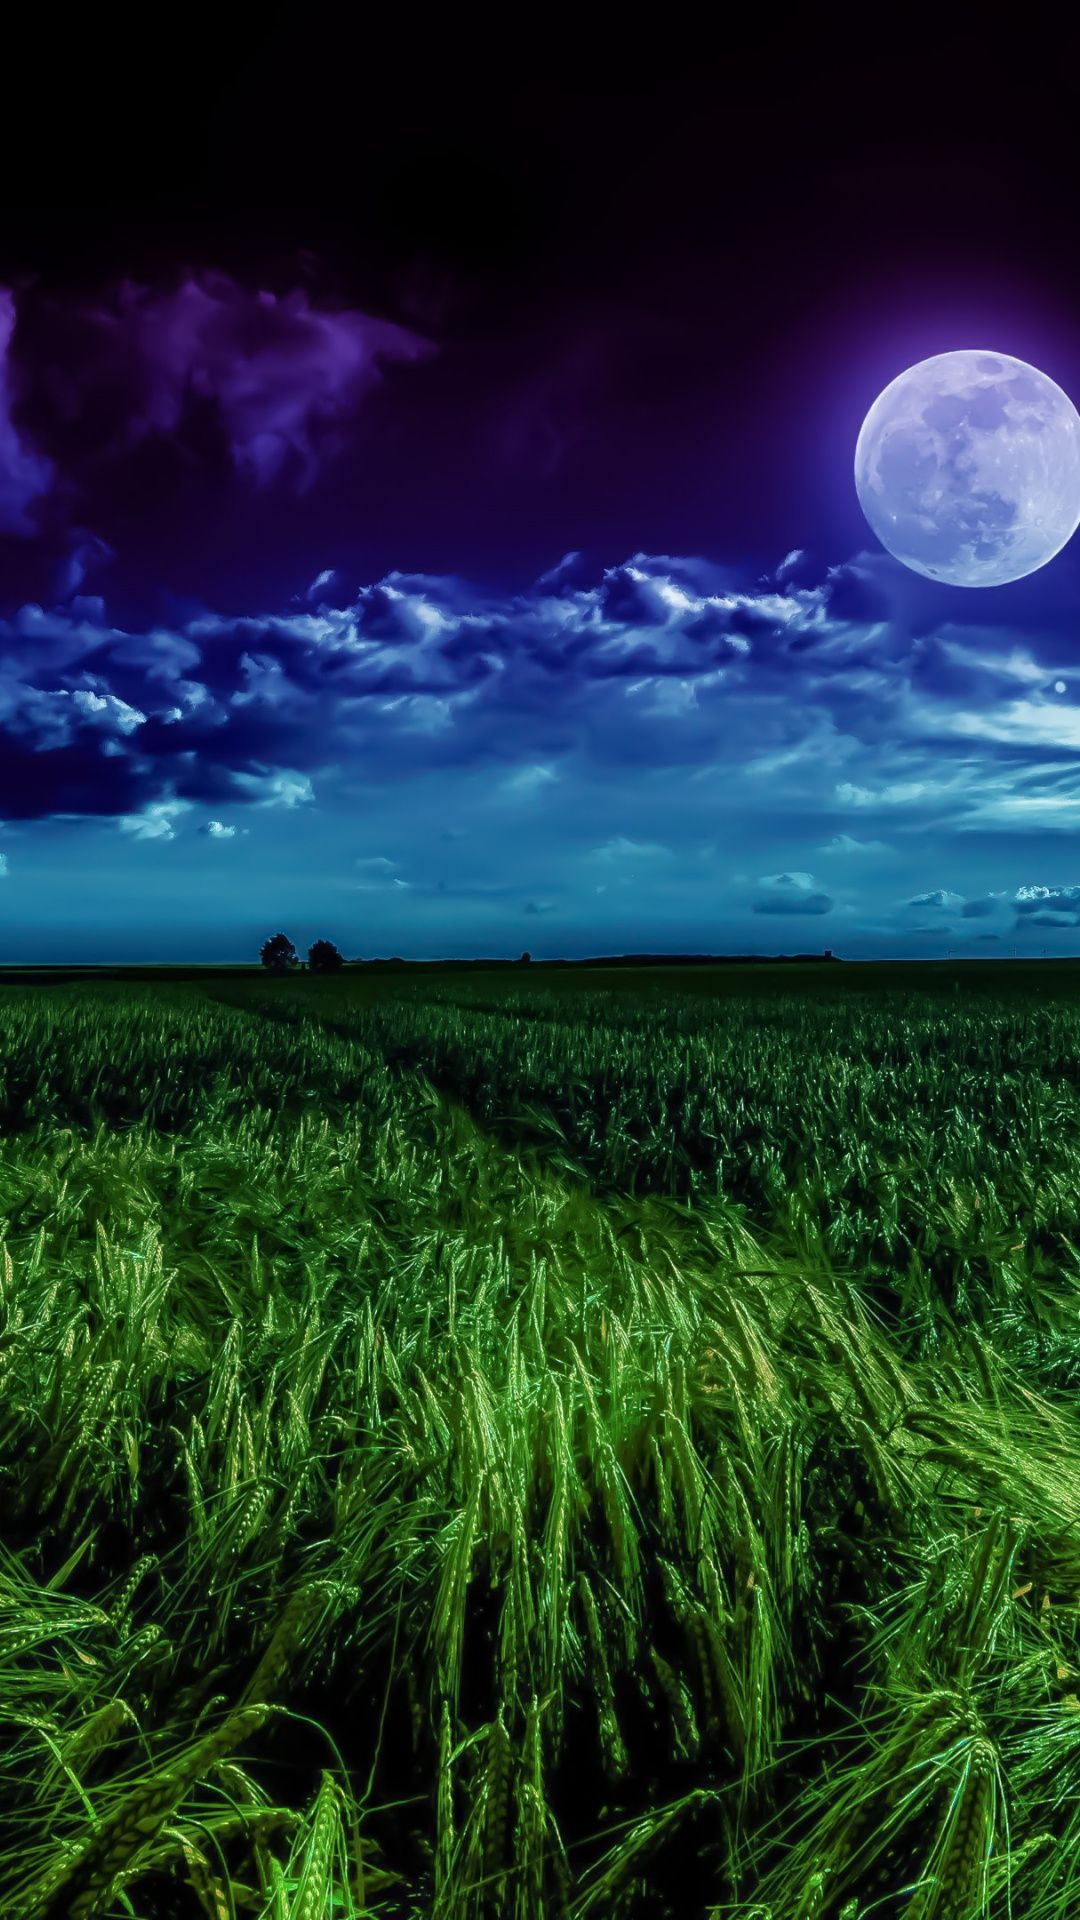 night  clouds  grass field  full moon wallpaper